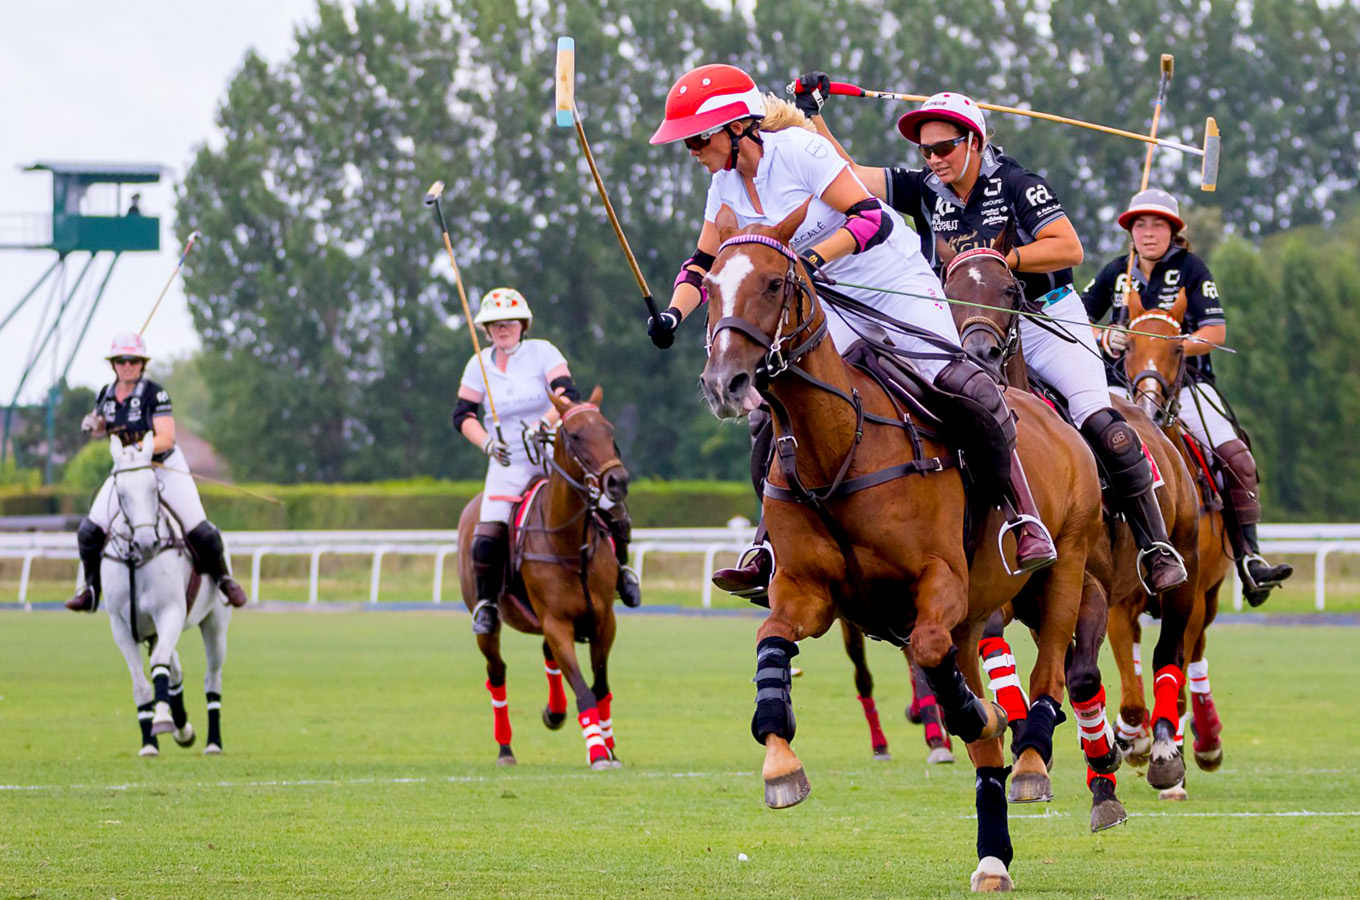 Polo season in deauville ushered